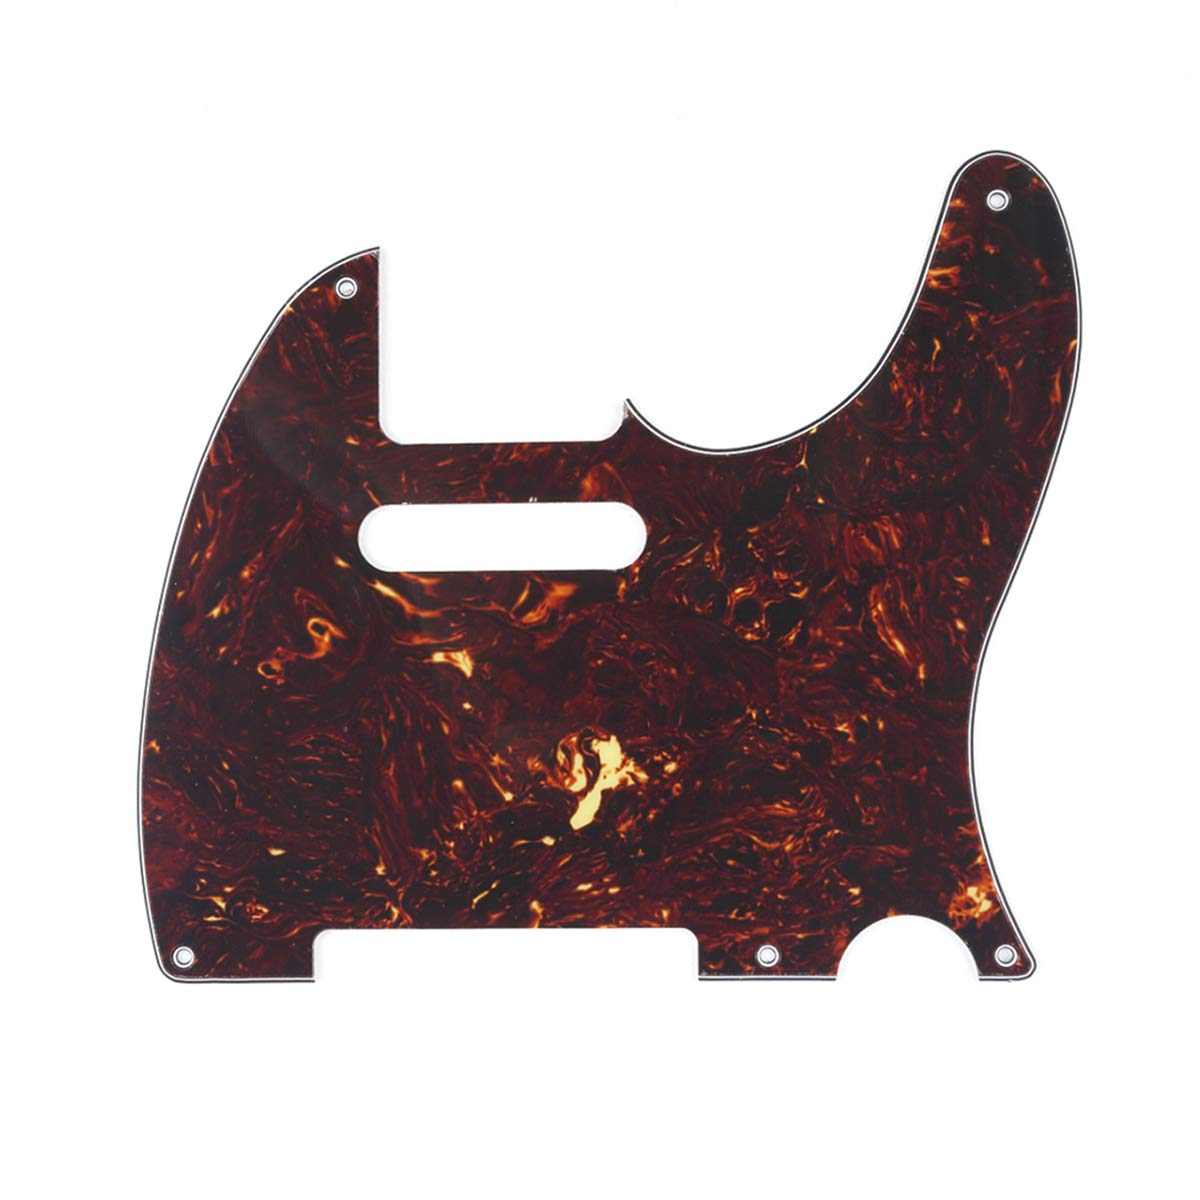 Musiclily 5 Hole Vintage Telecaster Pickguard Electric Guitar Scratch Plate for USA/Mexican Made Fender Standard Tele Style, 3Ply Mint Green MX1410MT